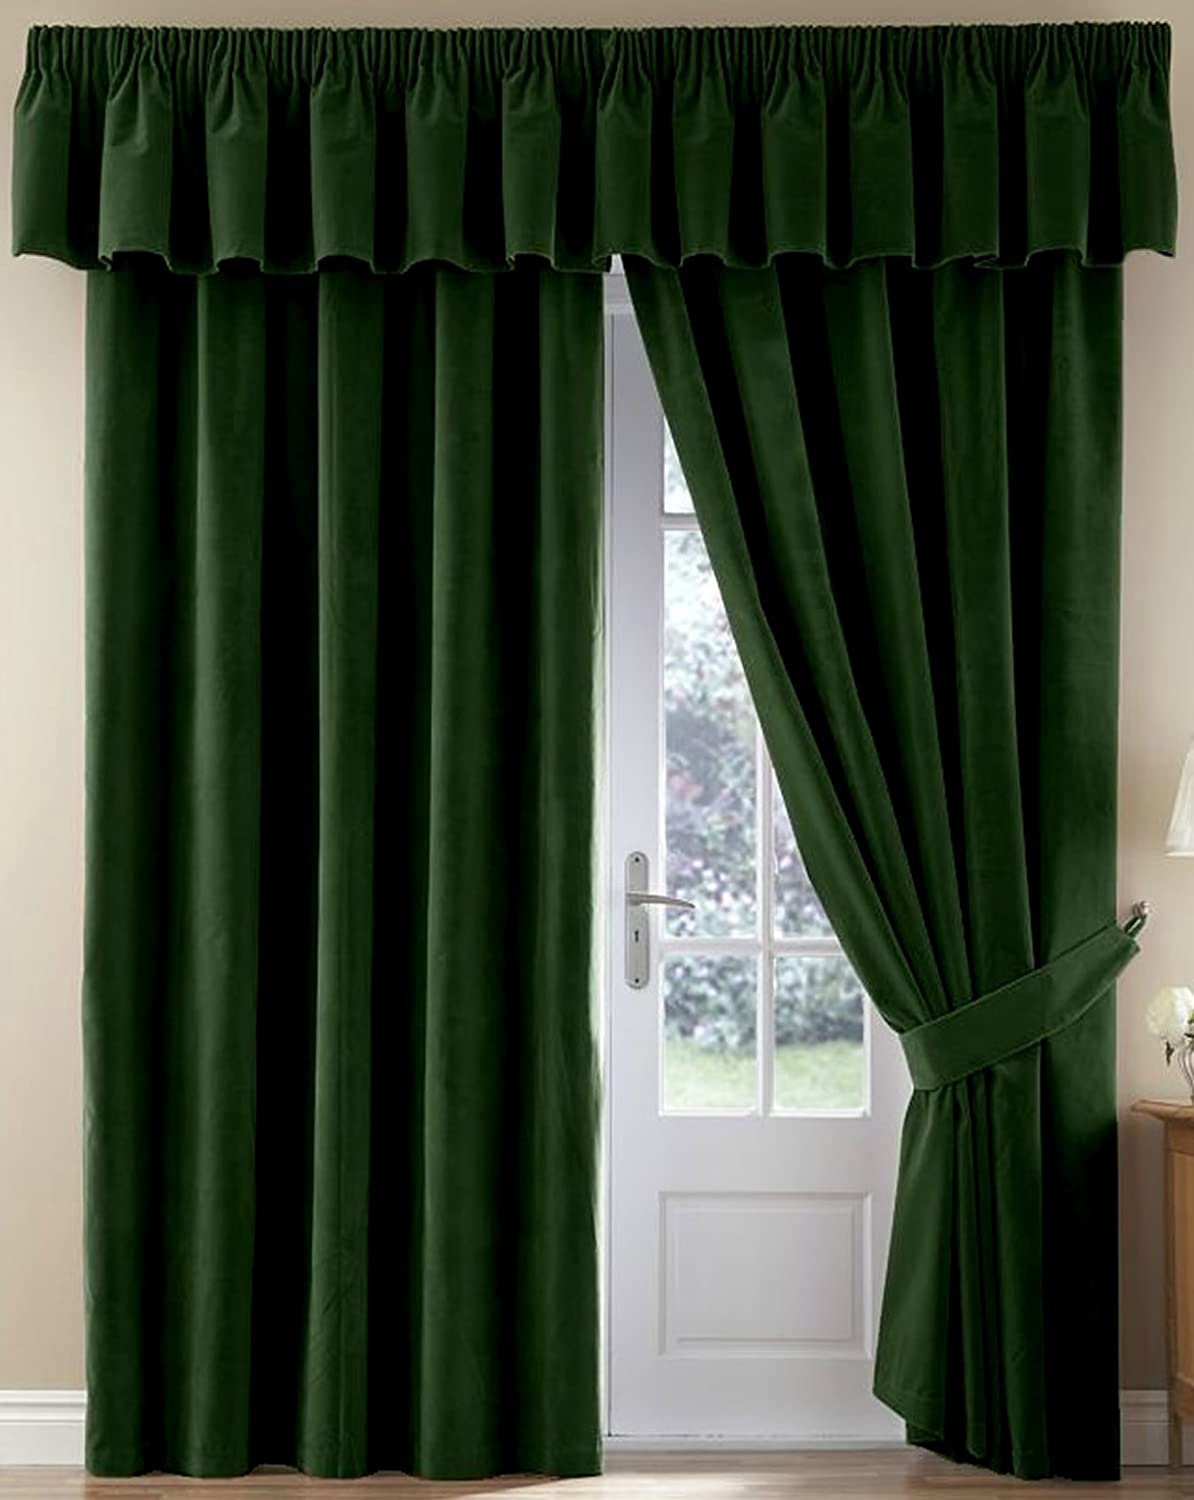 Thermal Velour Velvet Curtains Finished In Bottle Green 90